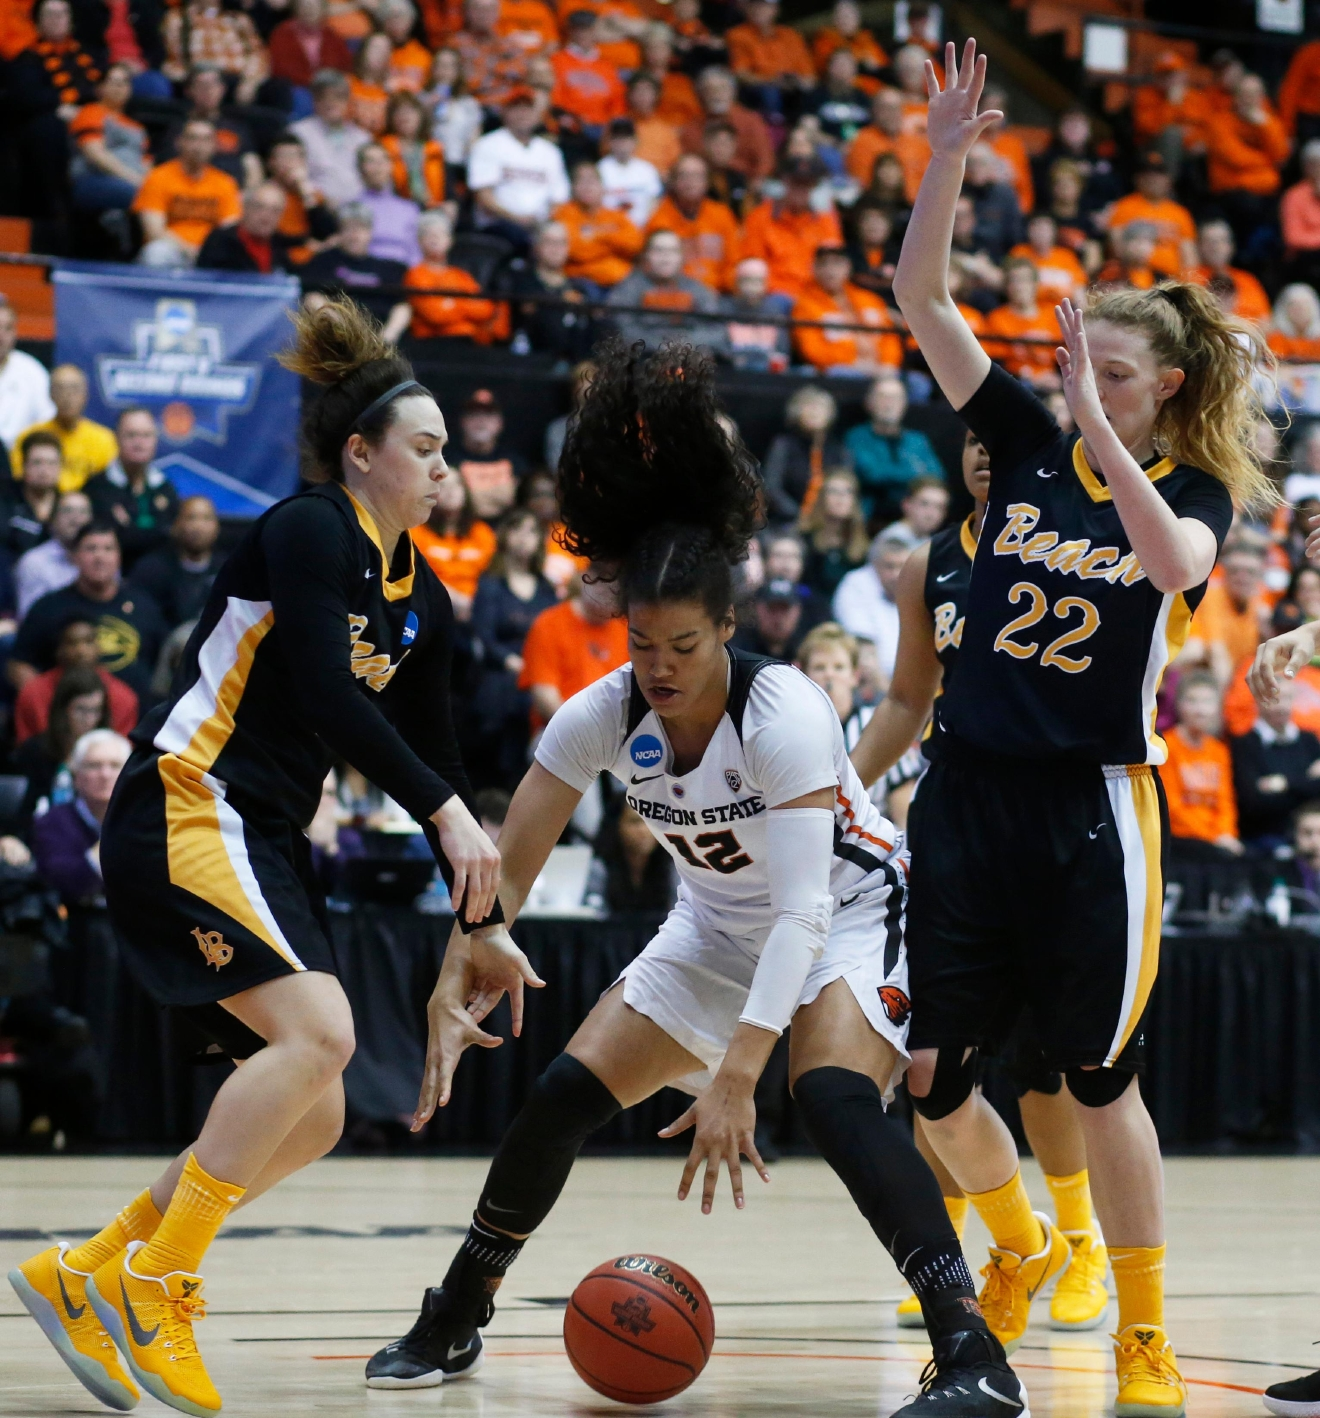 Oregon State's Kolbie Orum (12) goes after a loose ball with Long Beach State's Gigi Hascheff, left, and Madison Montgomery (22) during the first half of a first-round game in the women's NCAA college basketball tournament Friday, March 17, 2017, in Corvallis, Ore. (AP Photo/Timothy J. Gonzalez)